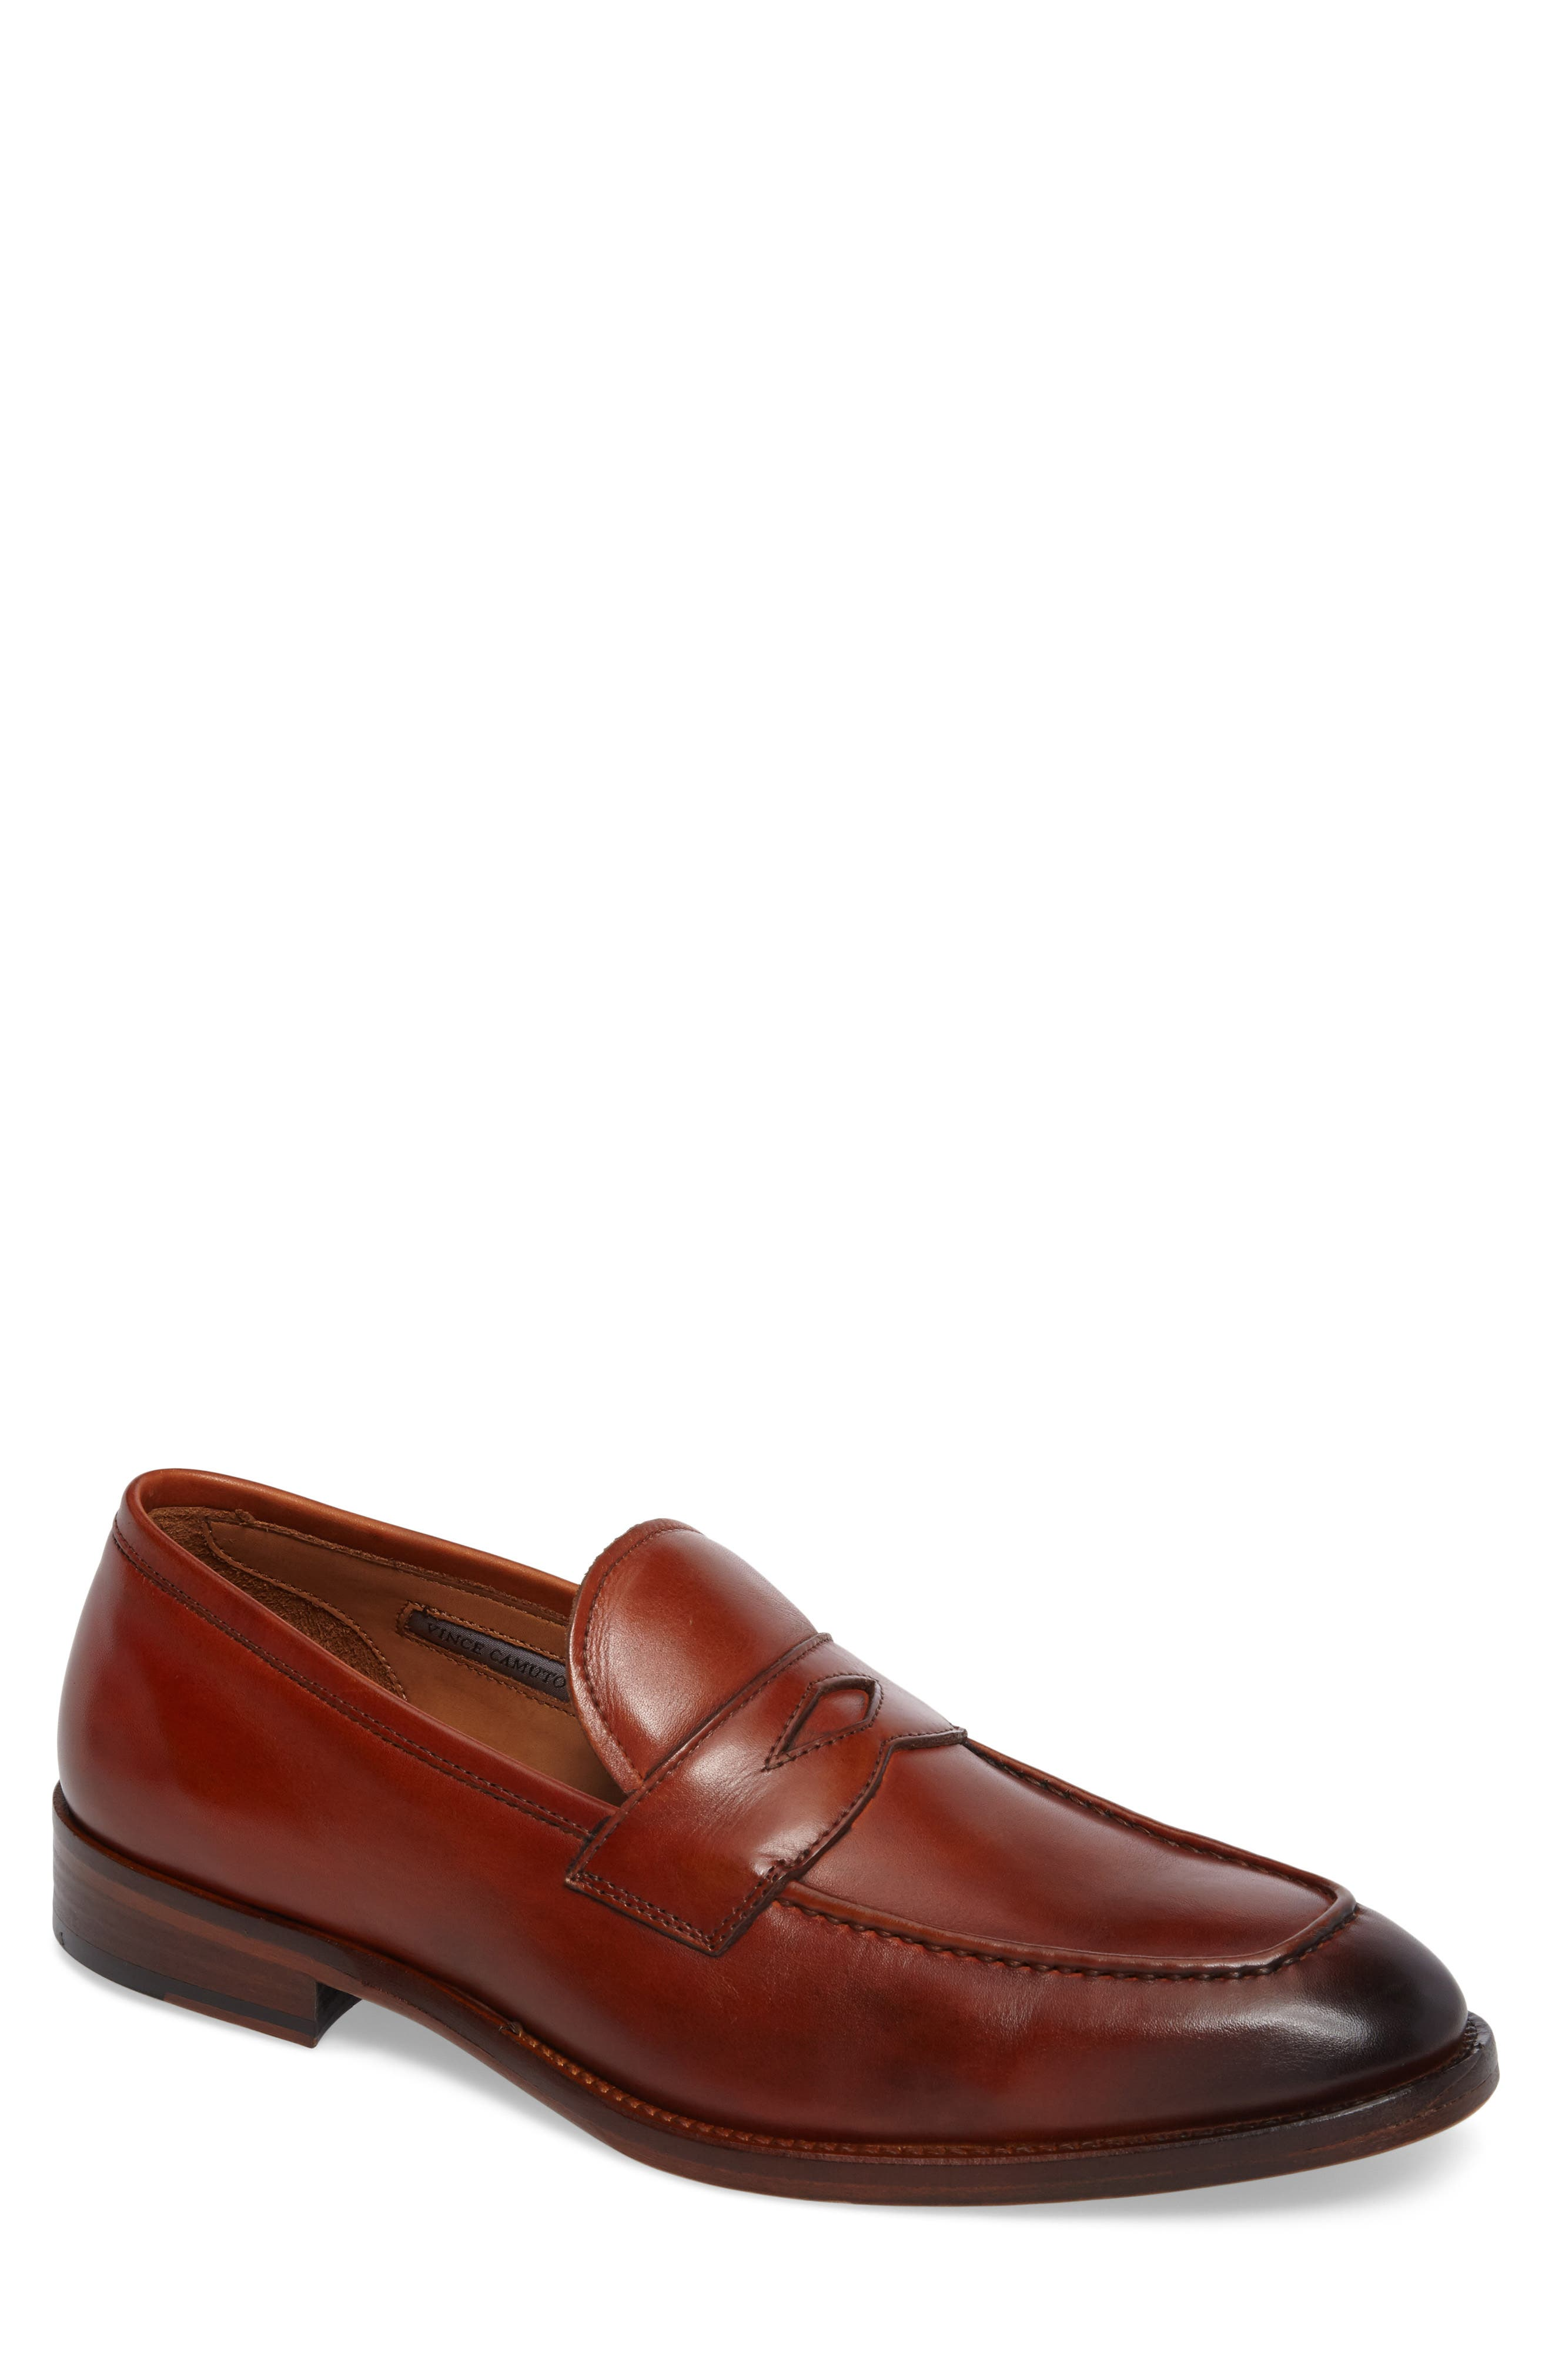 Vince Camuto Hoth Penny Loafer (Men)